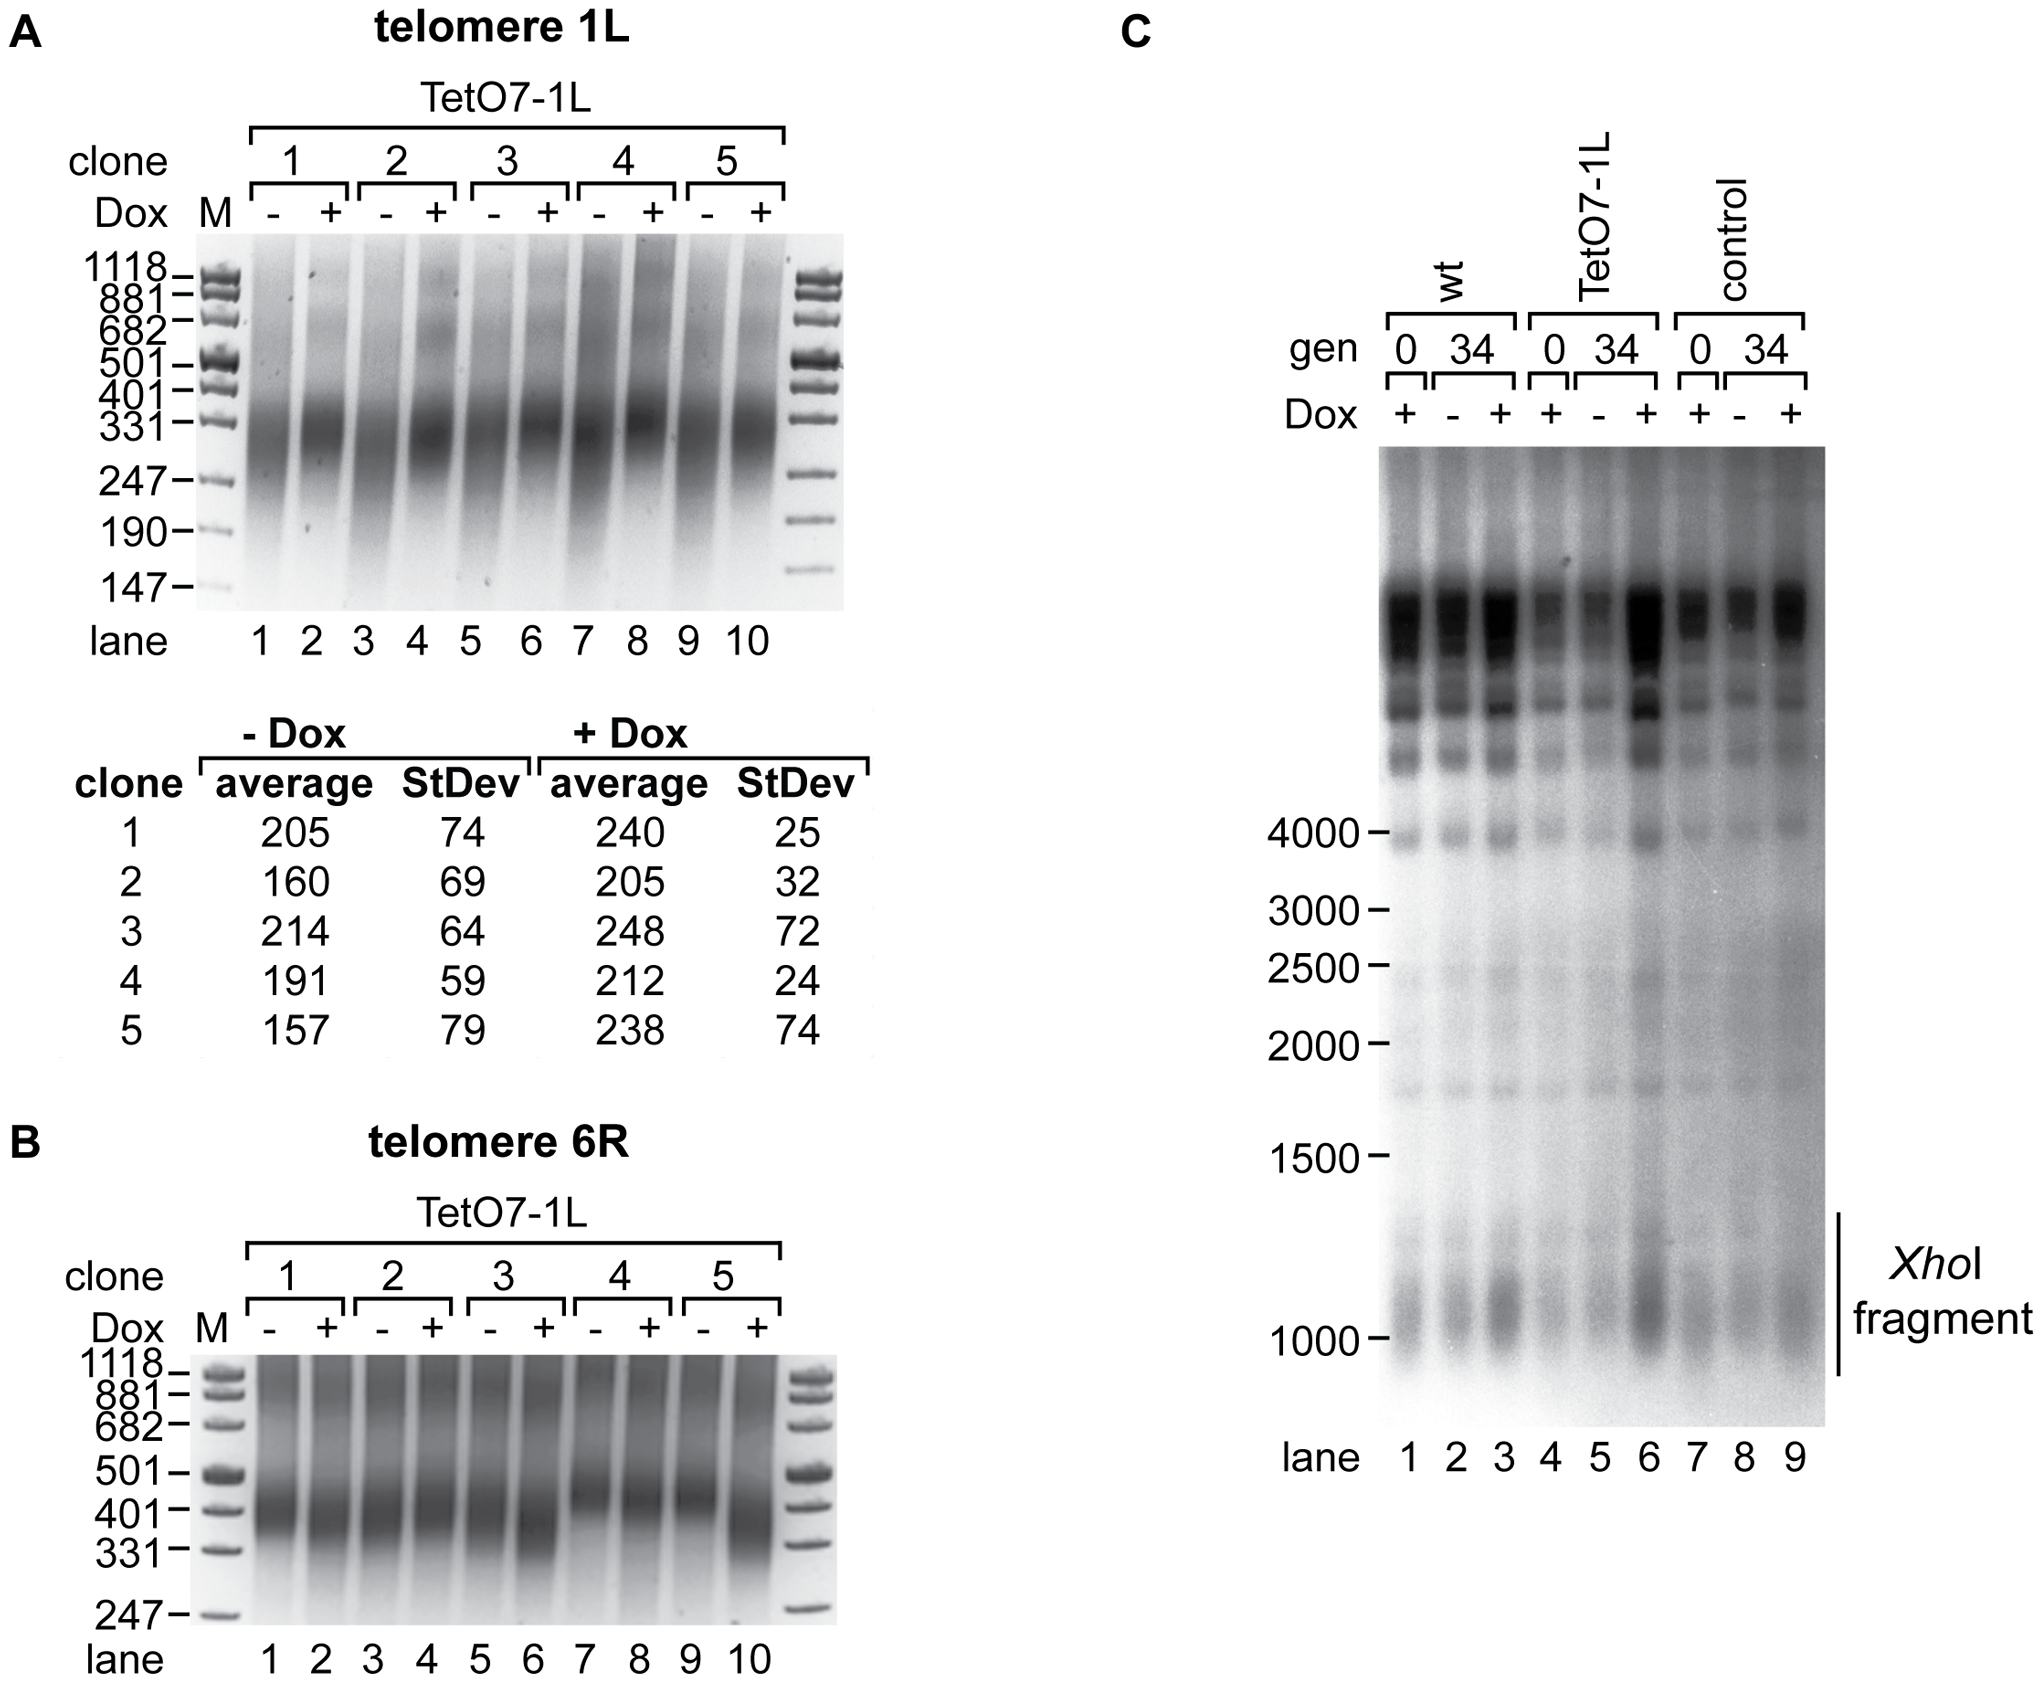 1L TERRA acts in cis and leads to shortening of telomere 1L.